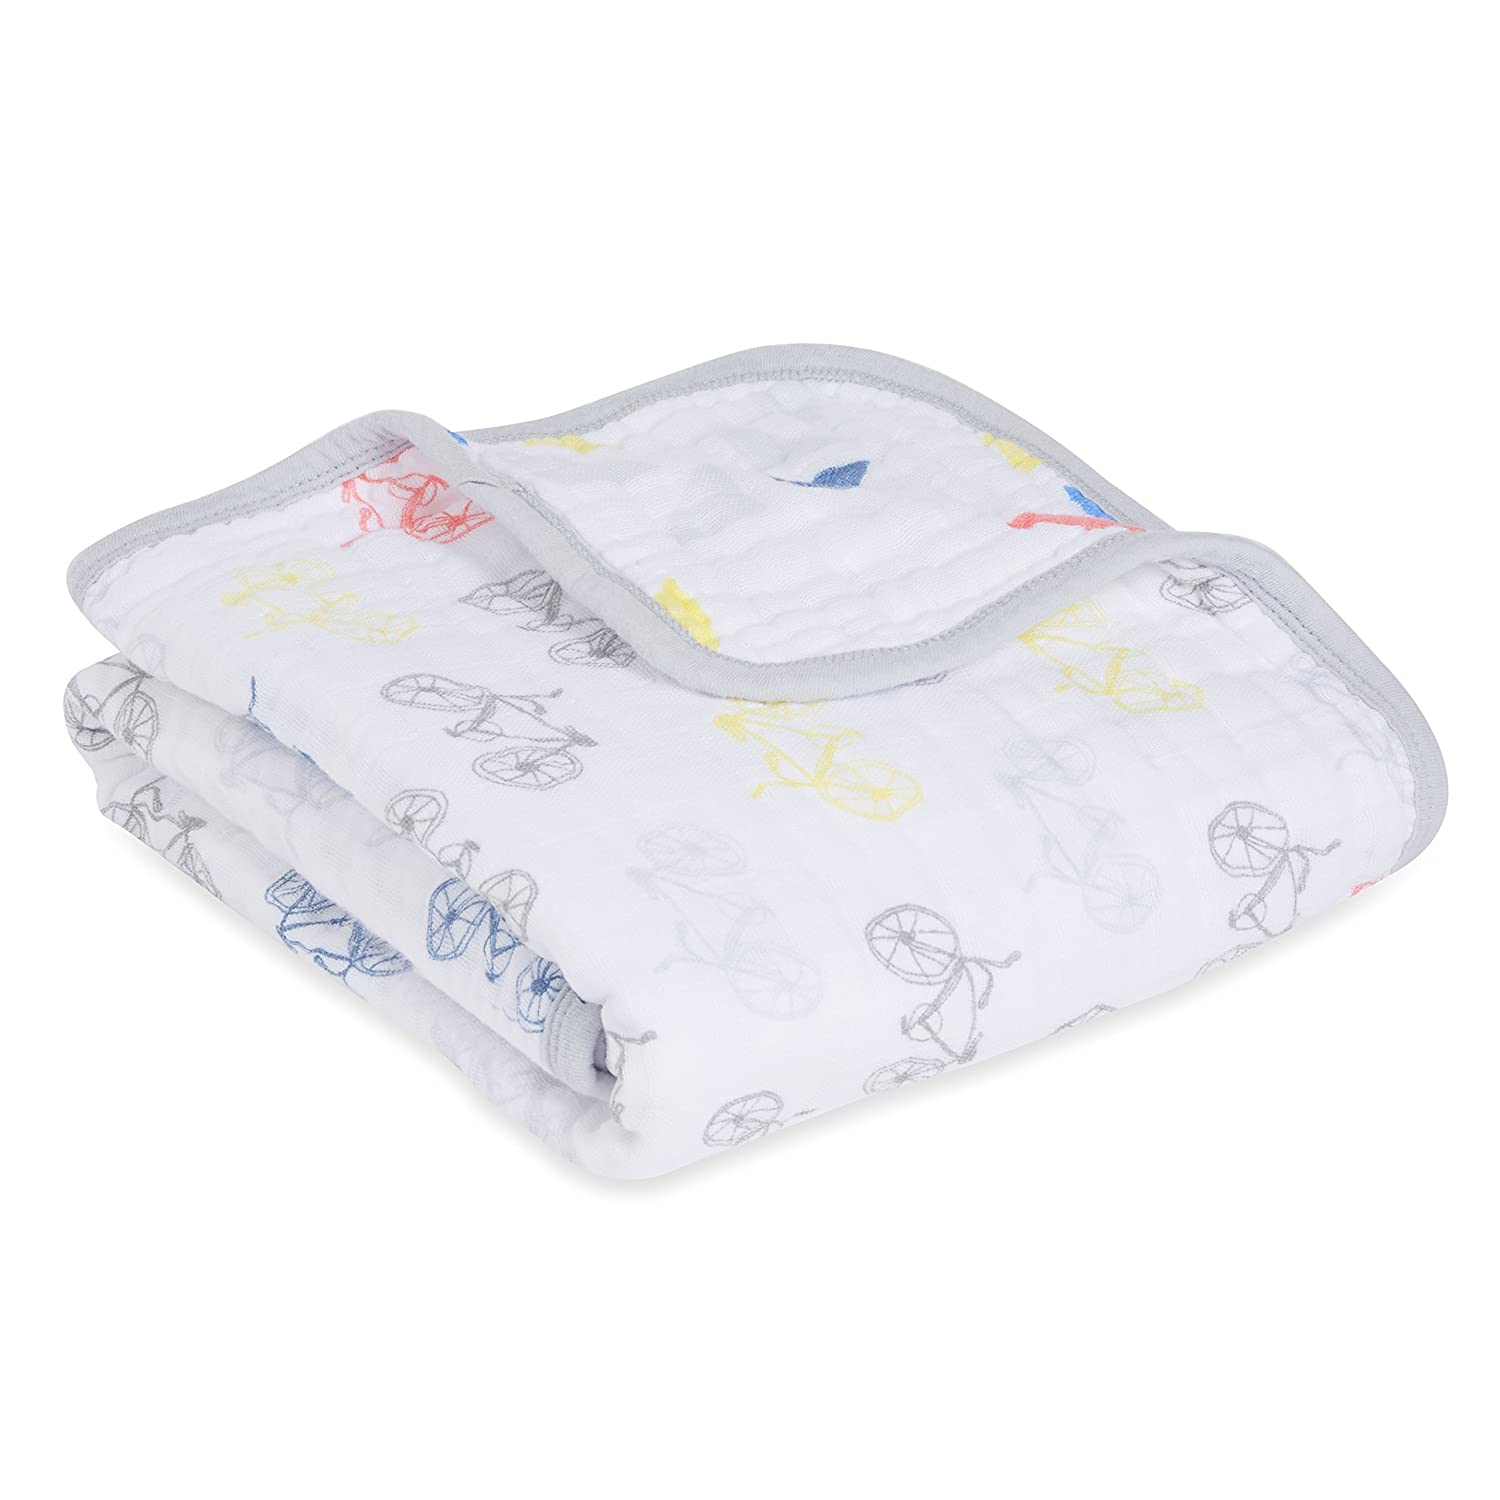 aden + anais Stroller Blanket, Leader of The Pack 6099F